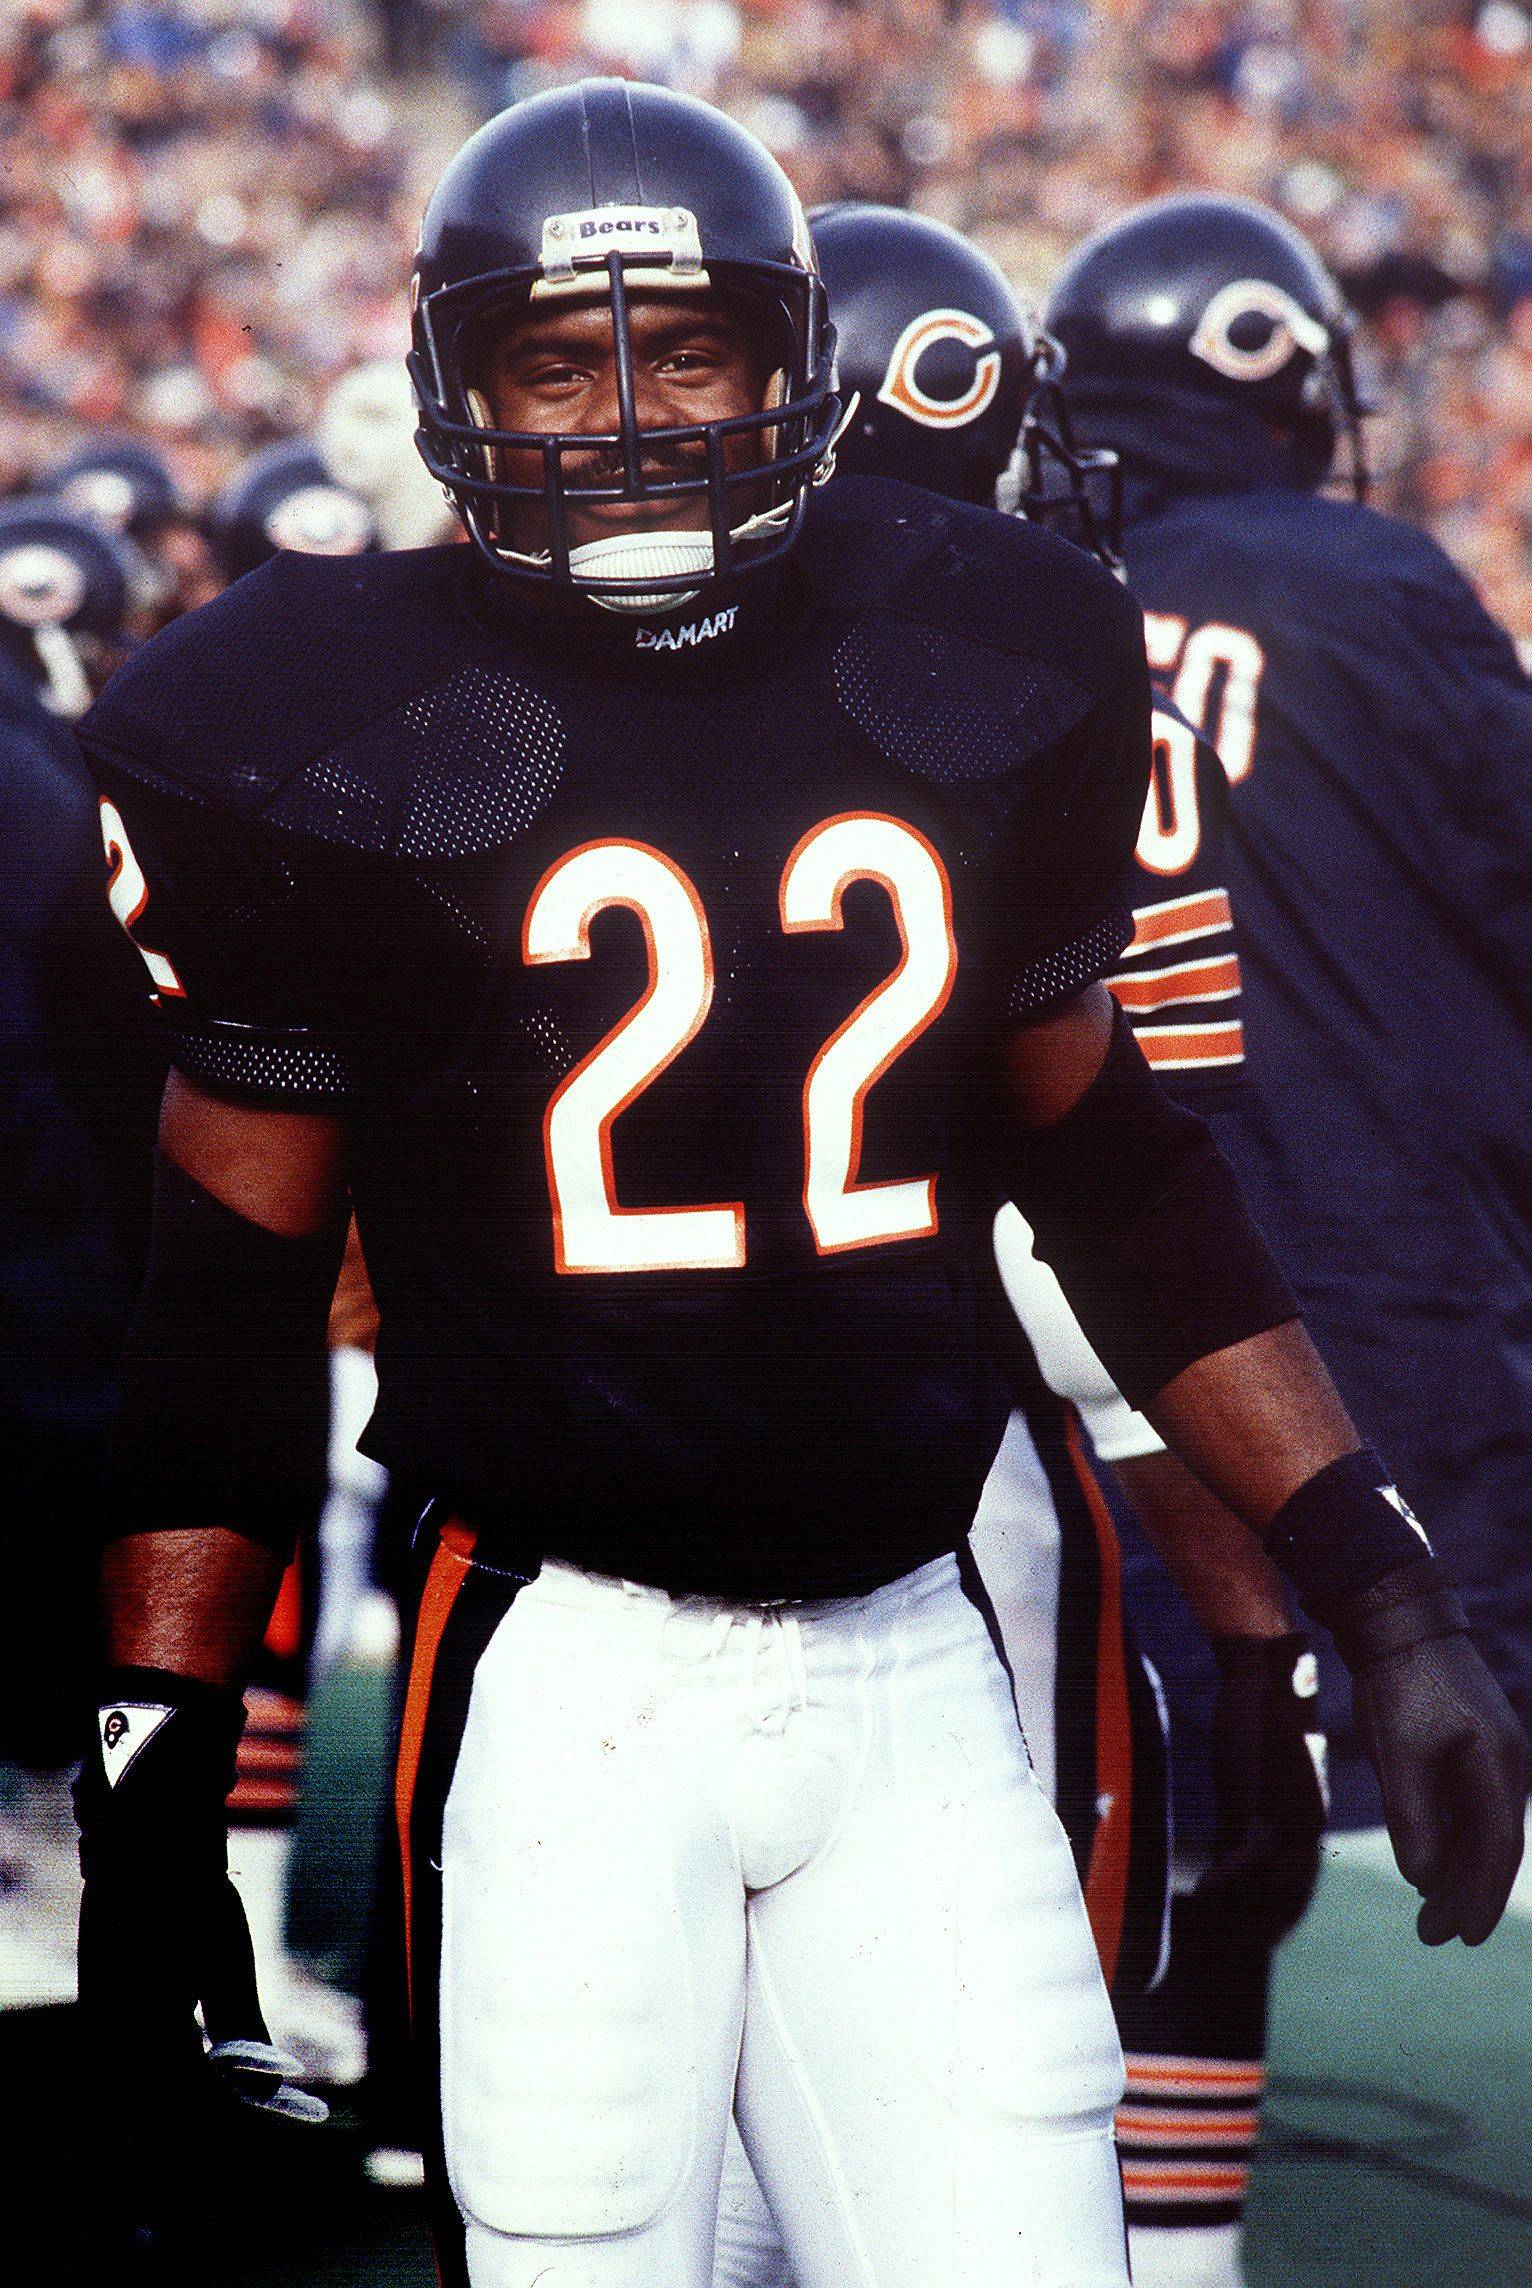 Daily Herald file photo 1985Chicago Bears defensive back Dave Duerson during the 1986 Super Bowl season.